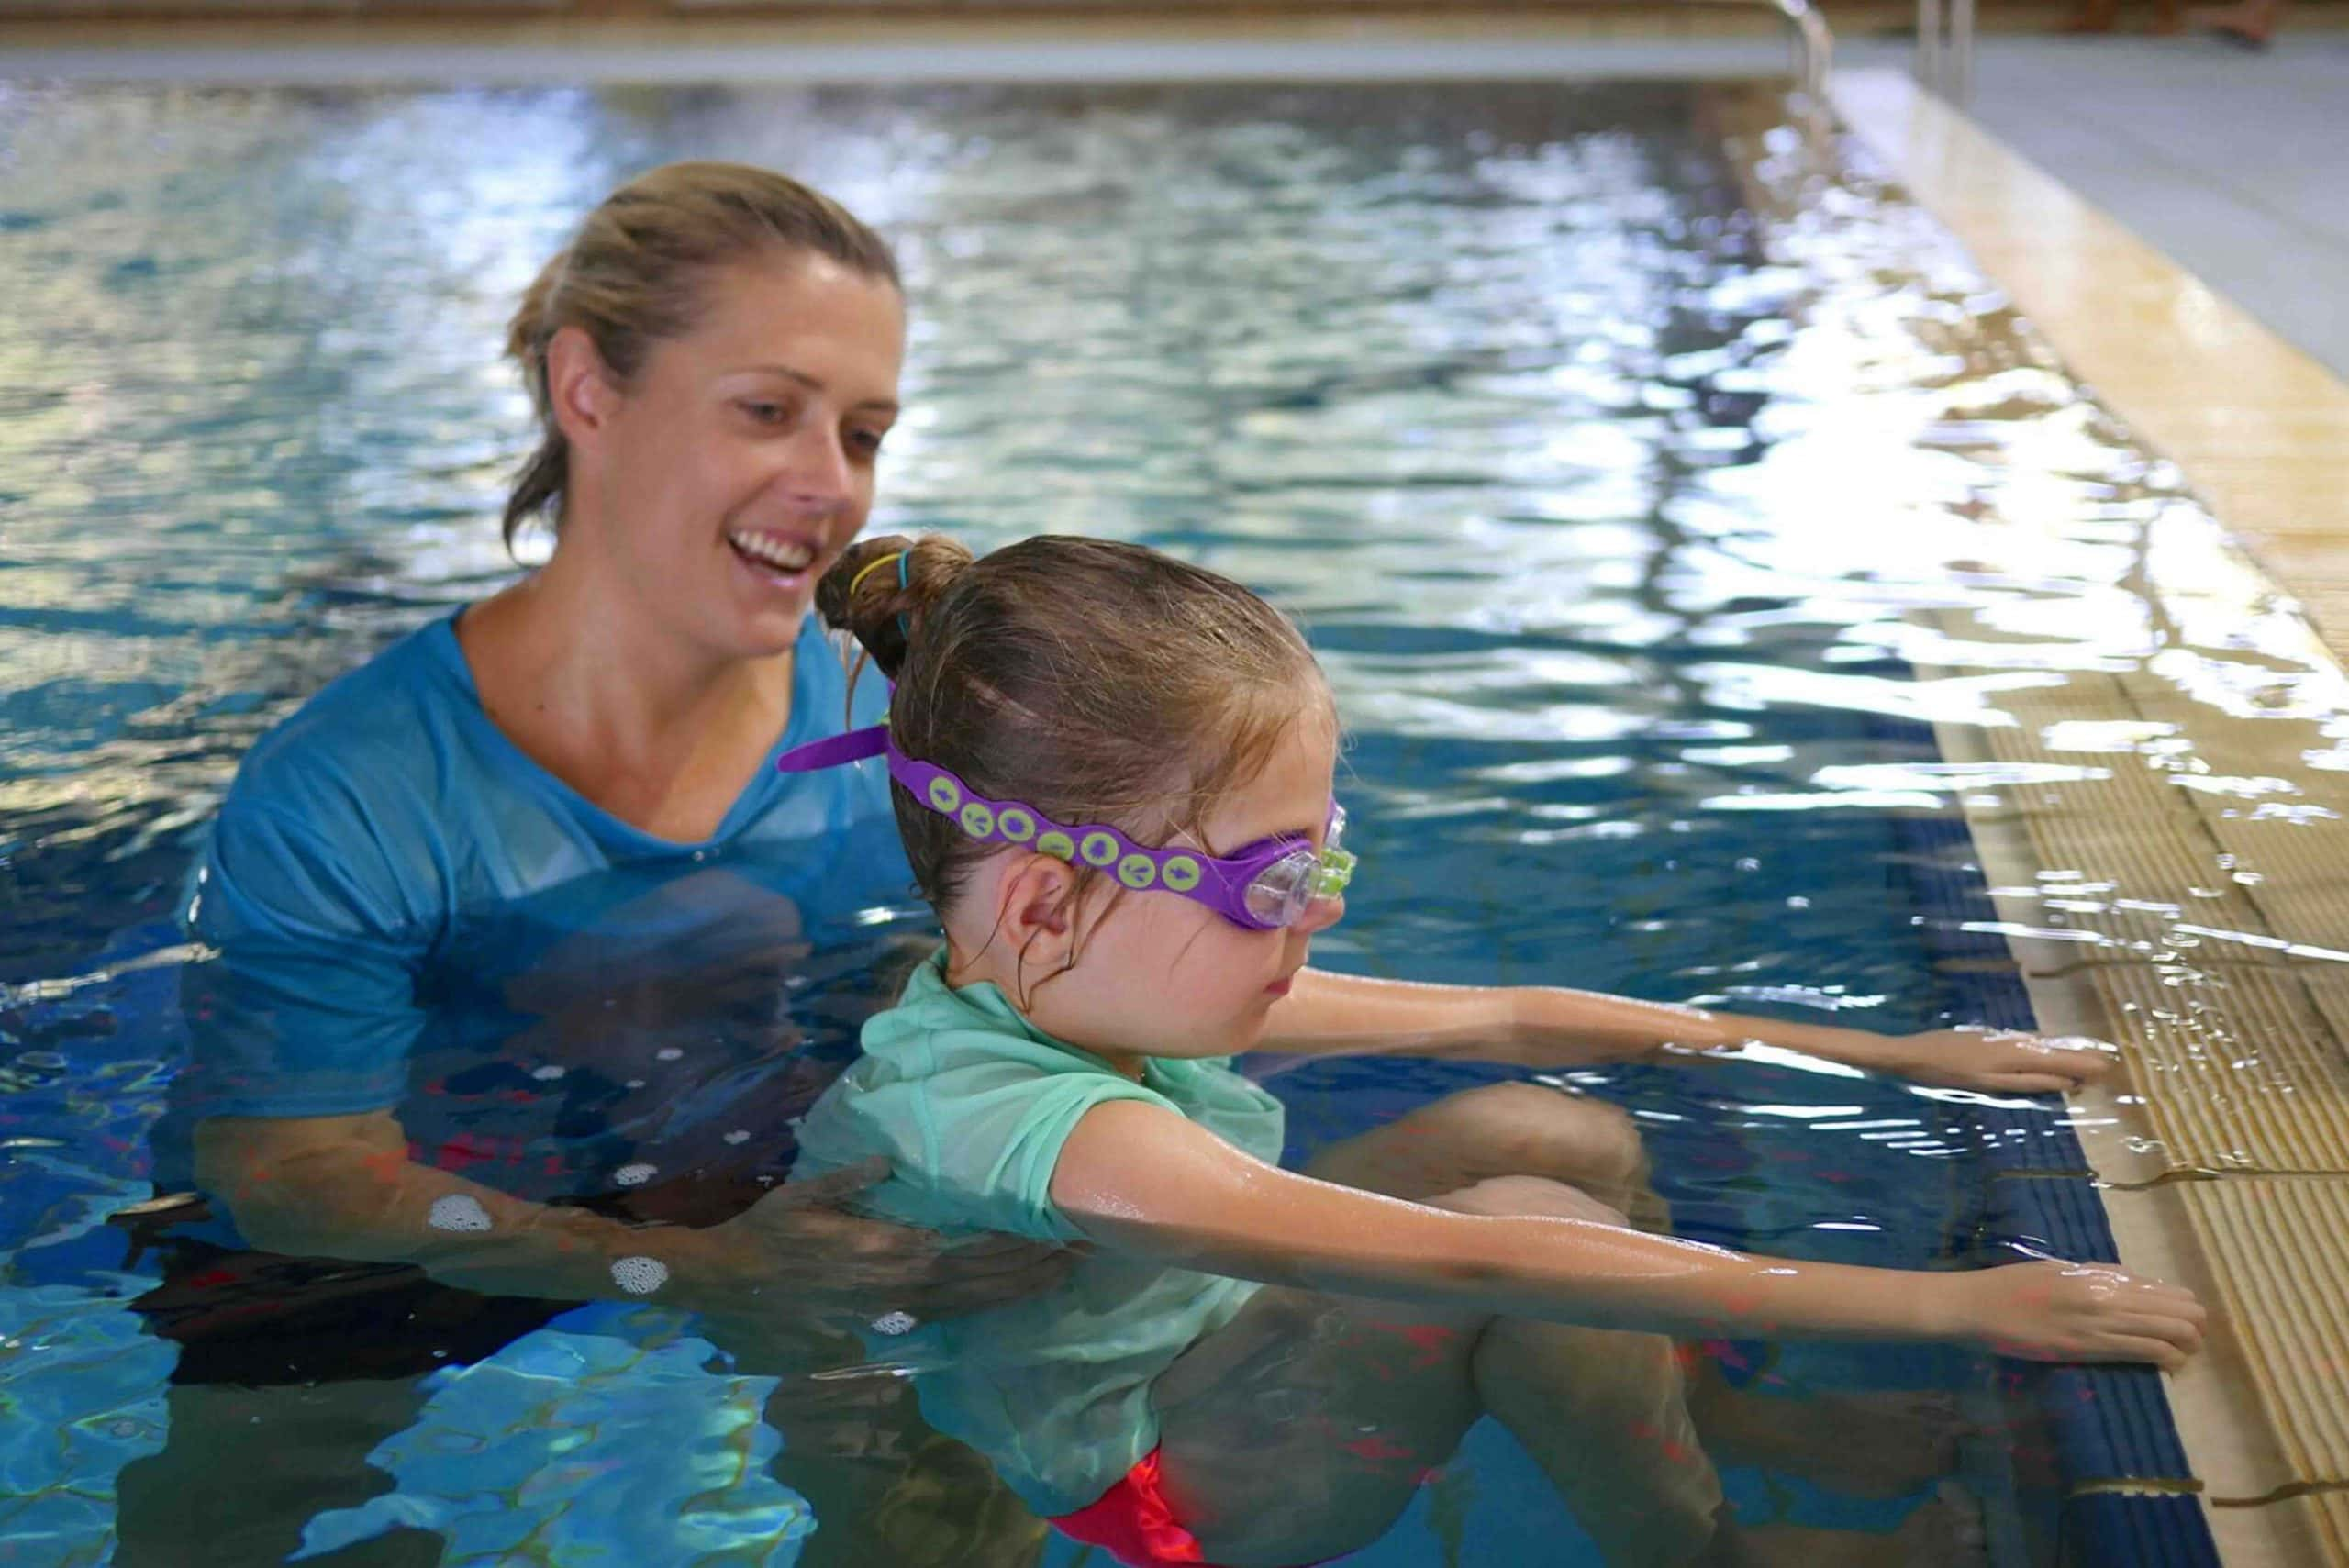 A female swimming instructor is teaching a young girl in a swimming pool.